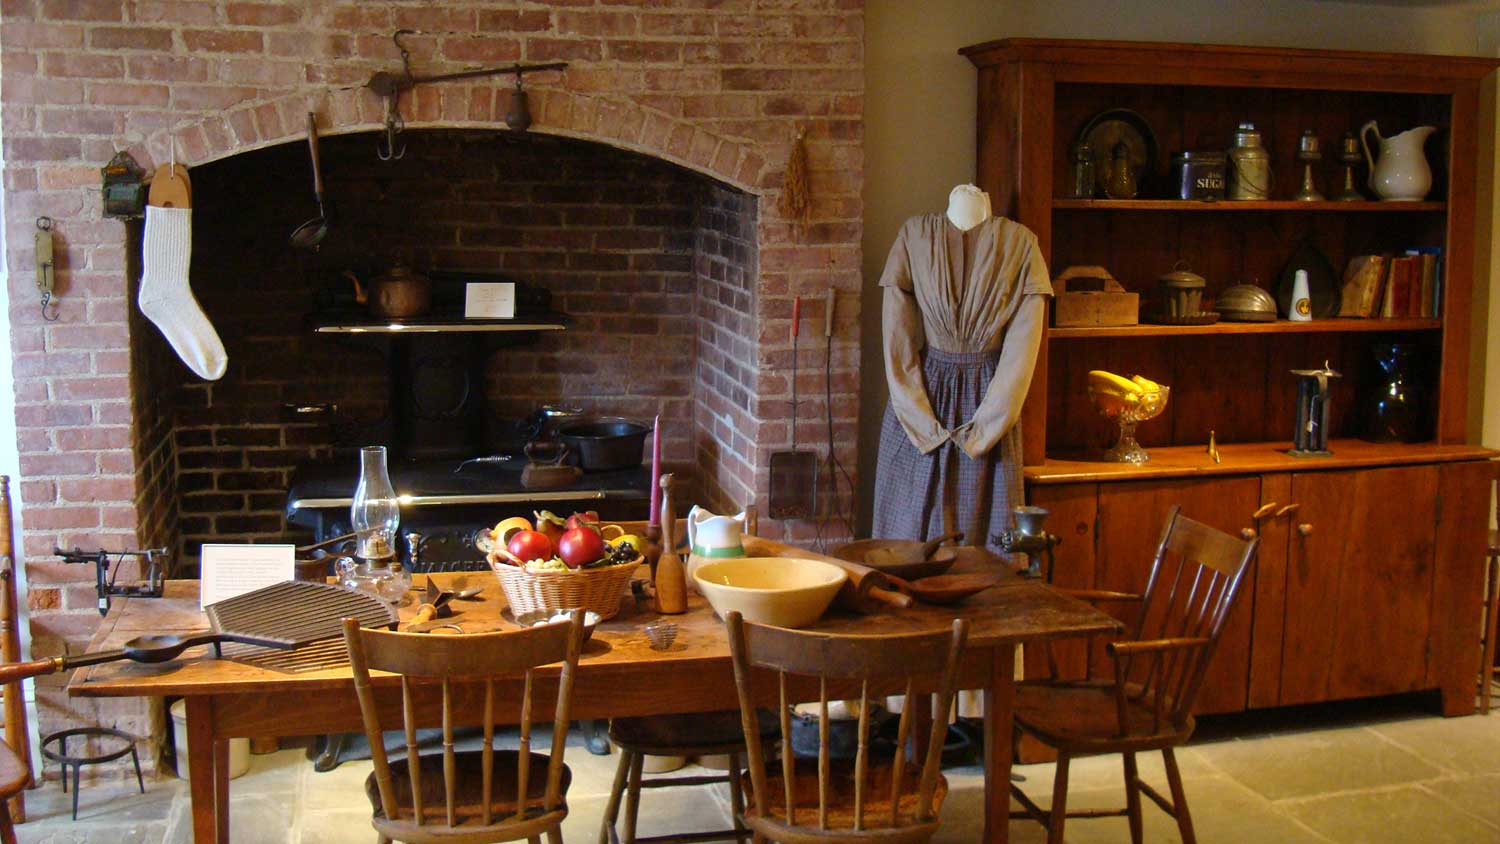 Bedroom The Kitchen Greeley museum virtual tour new castle historical society the kitchen at horace greeley house